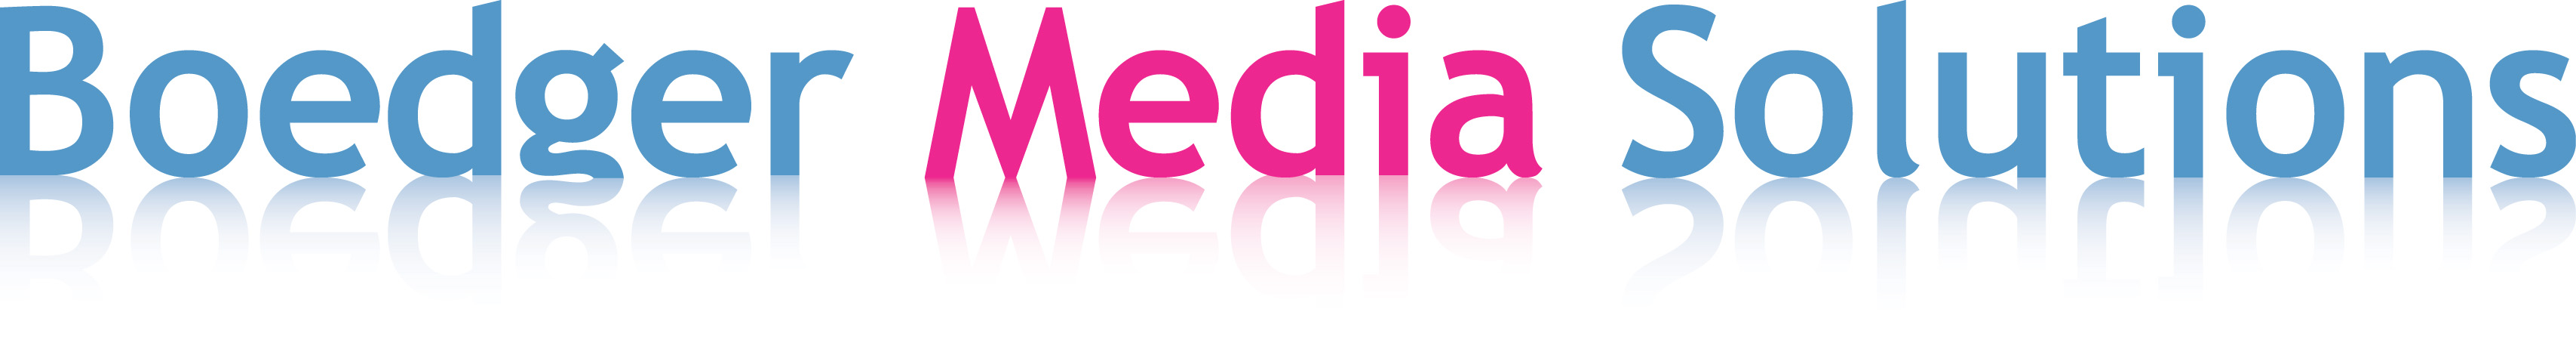 Boedger Media Solutions